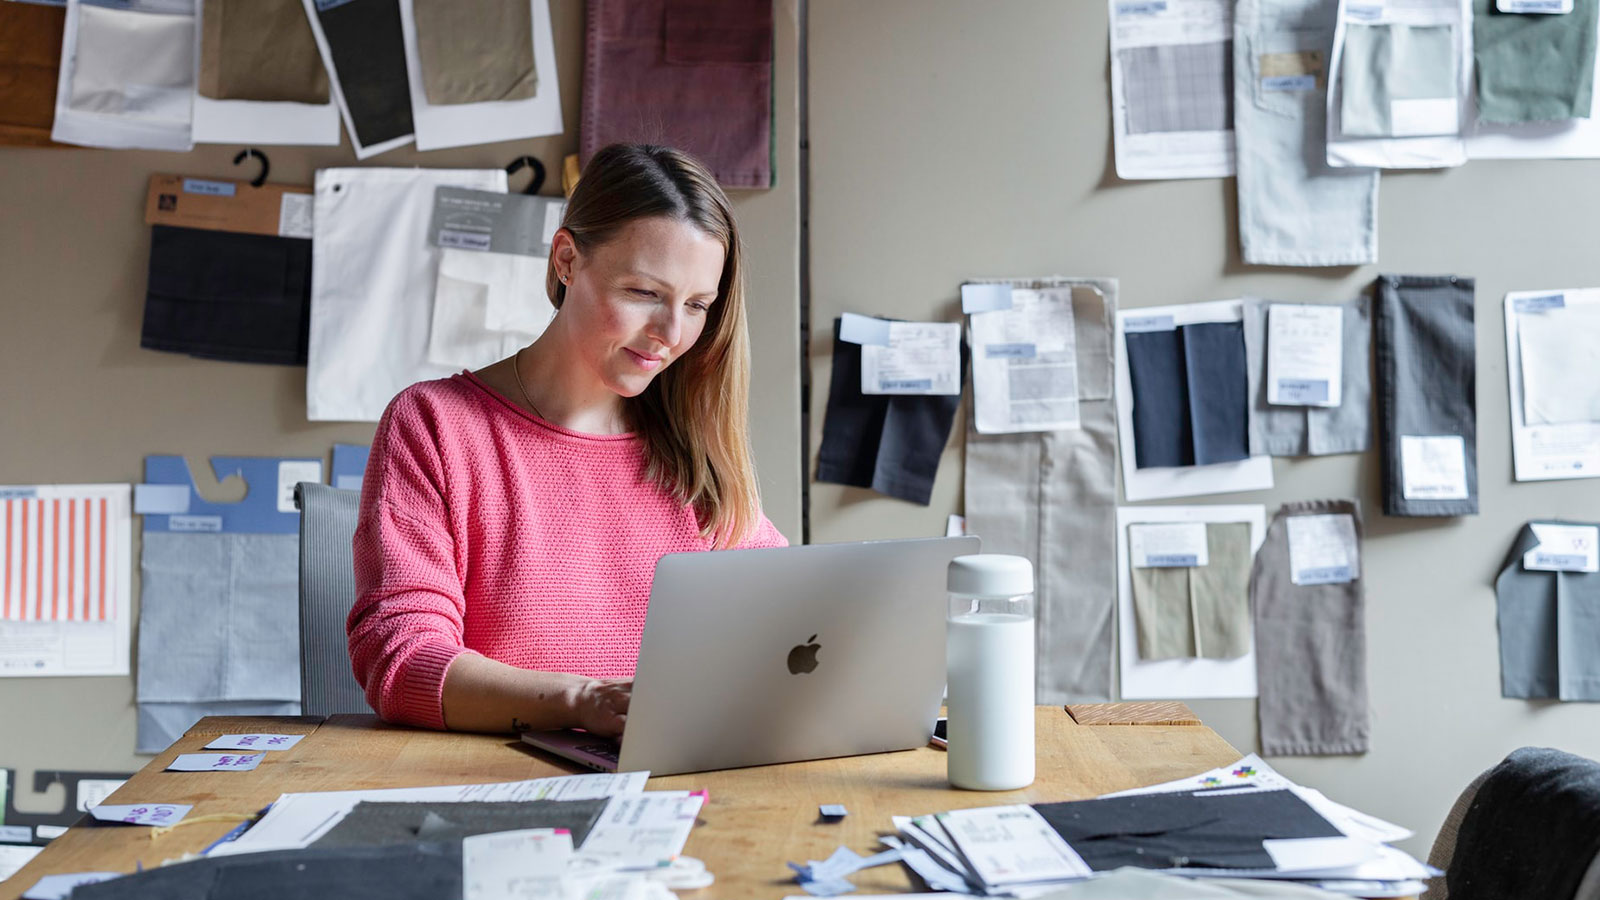 woman working with textiles using laptop banner image